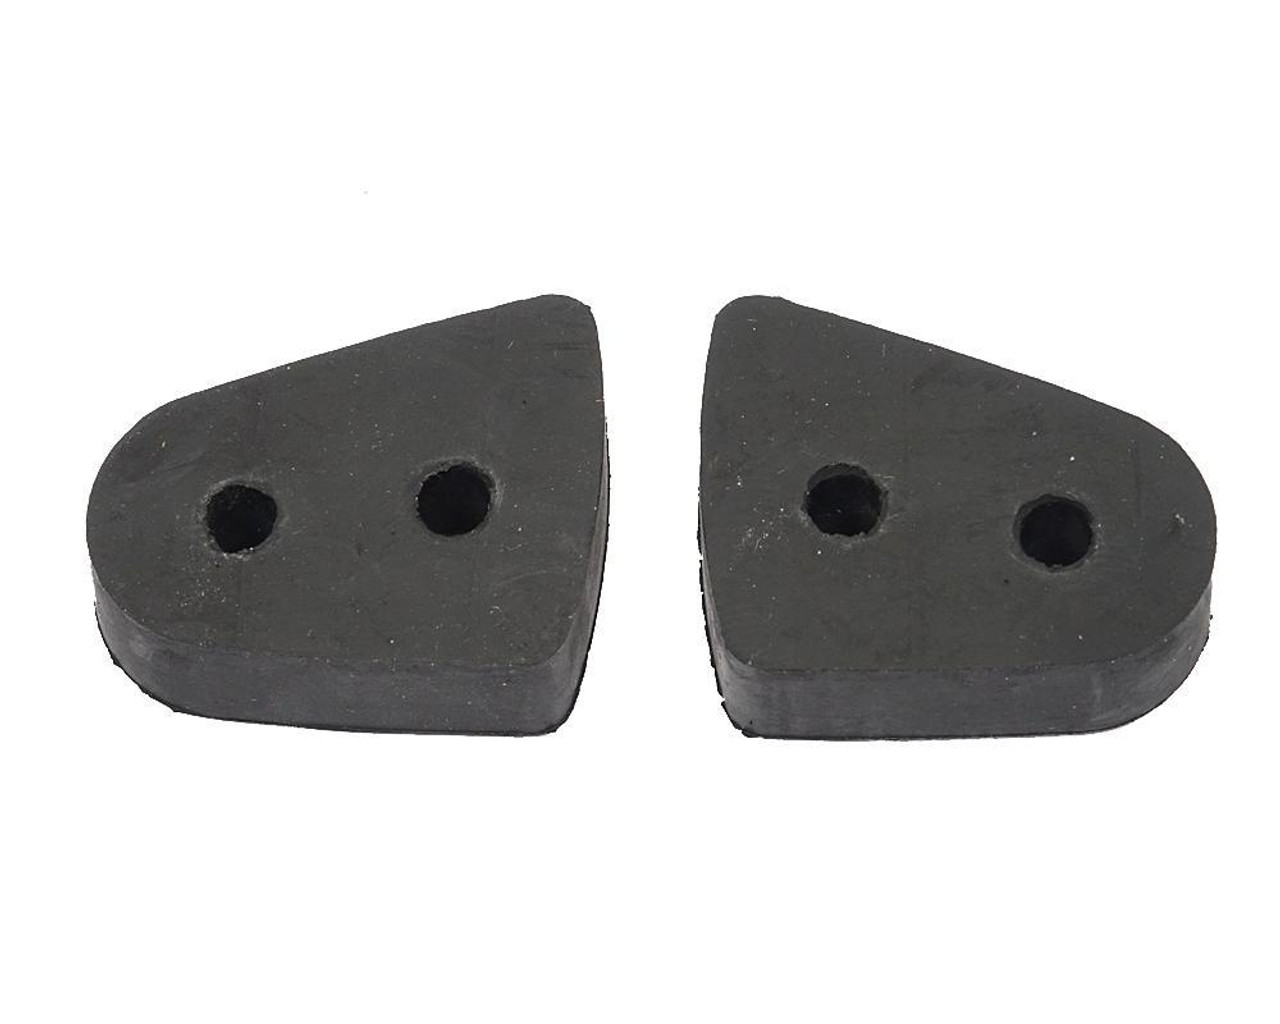 Original Solid Rubber Door Guide Set